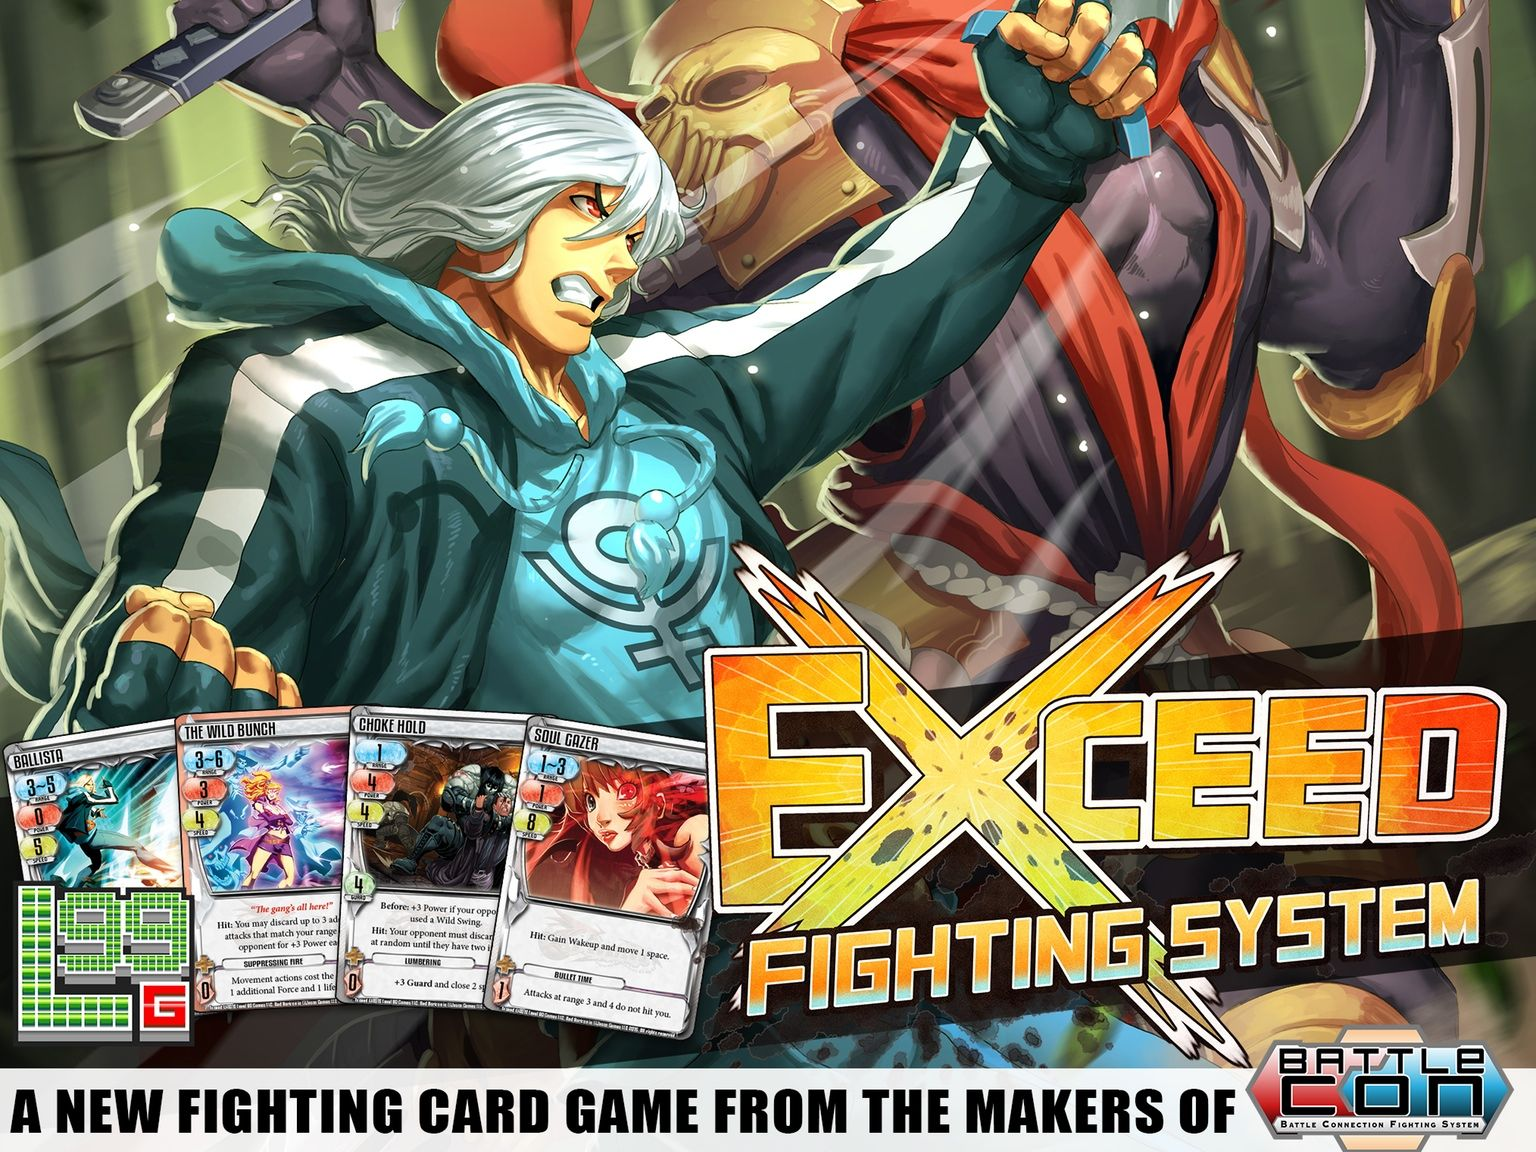 A new 2player card game with a focus on instinct